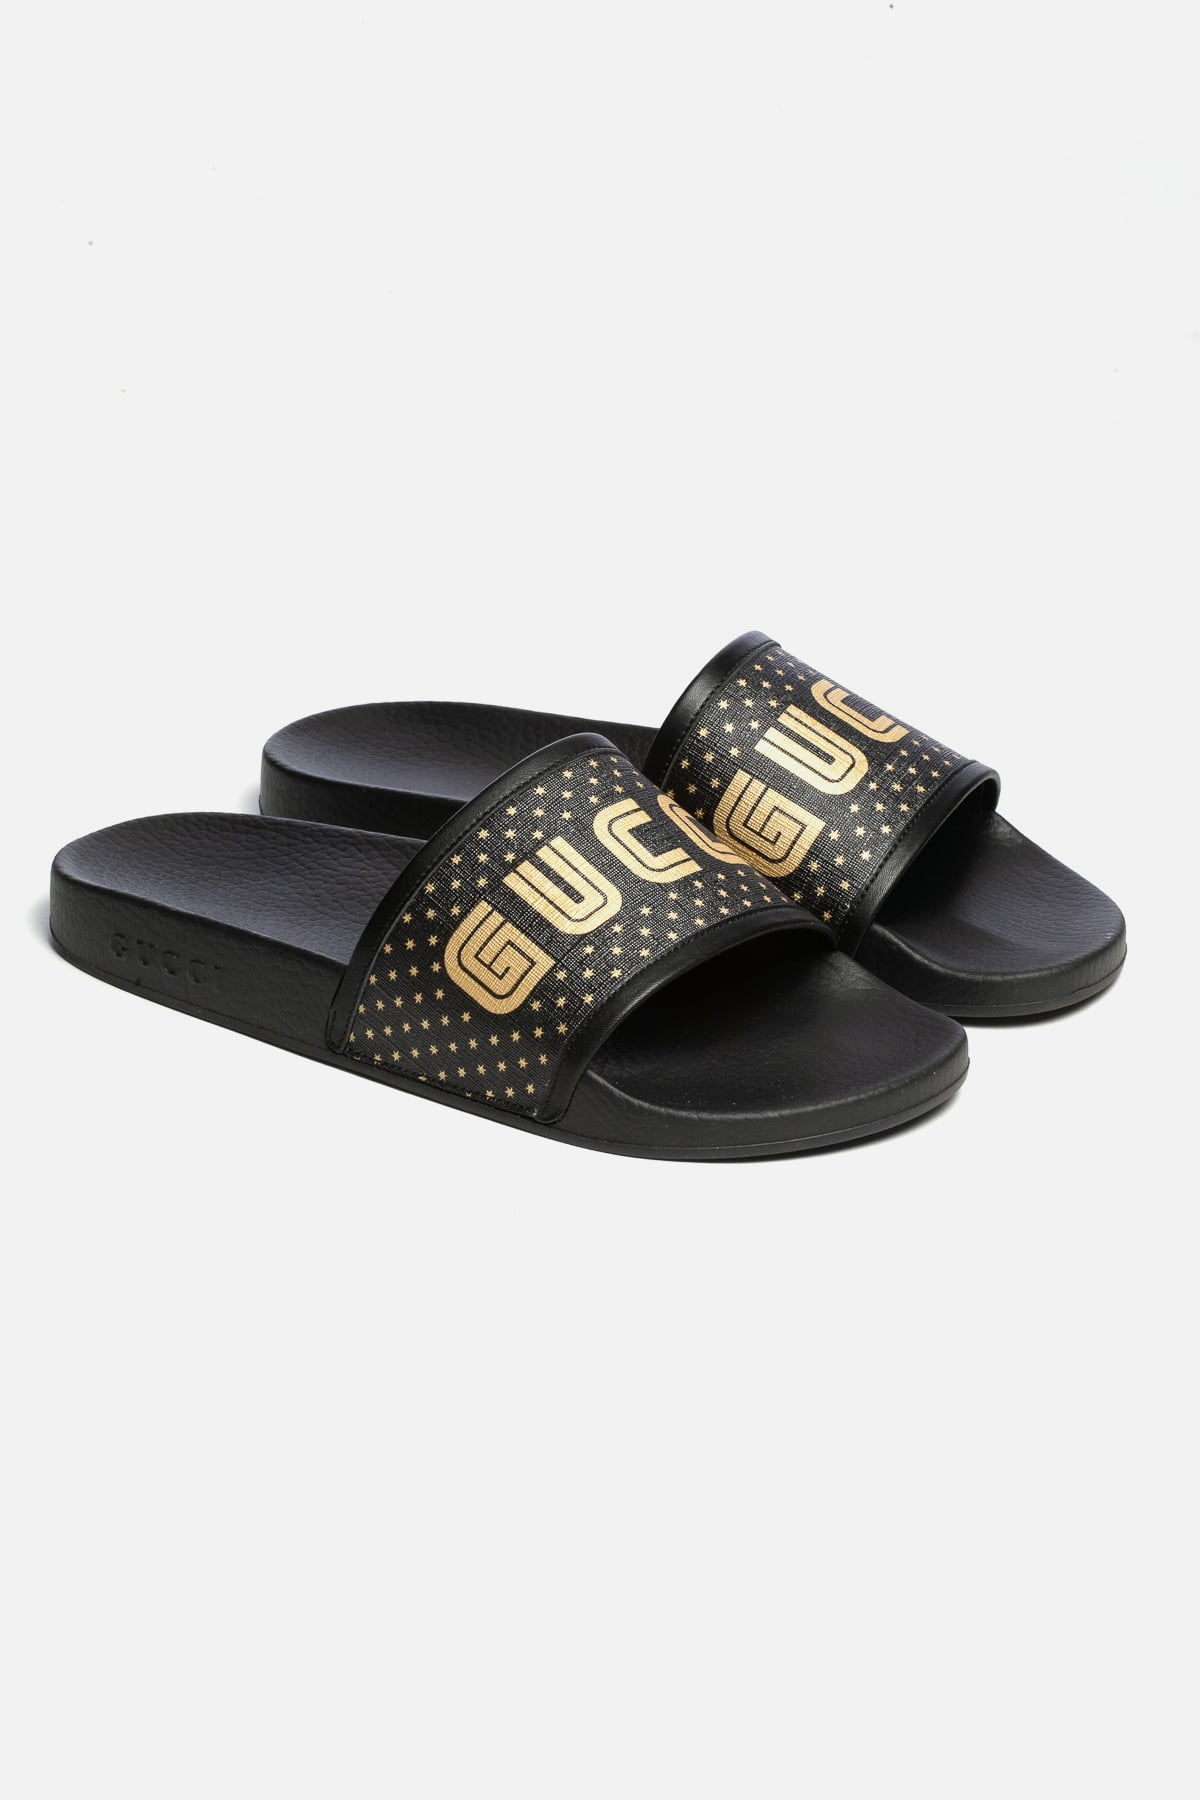 Supreme Guccy Star Leather Slide Sandals